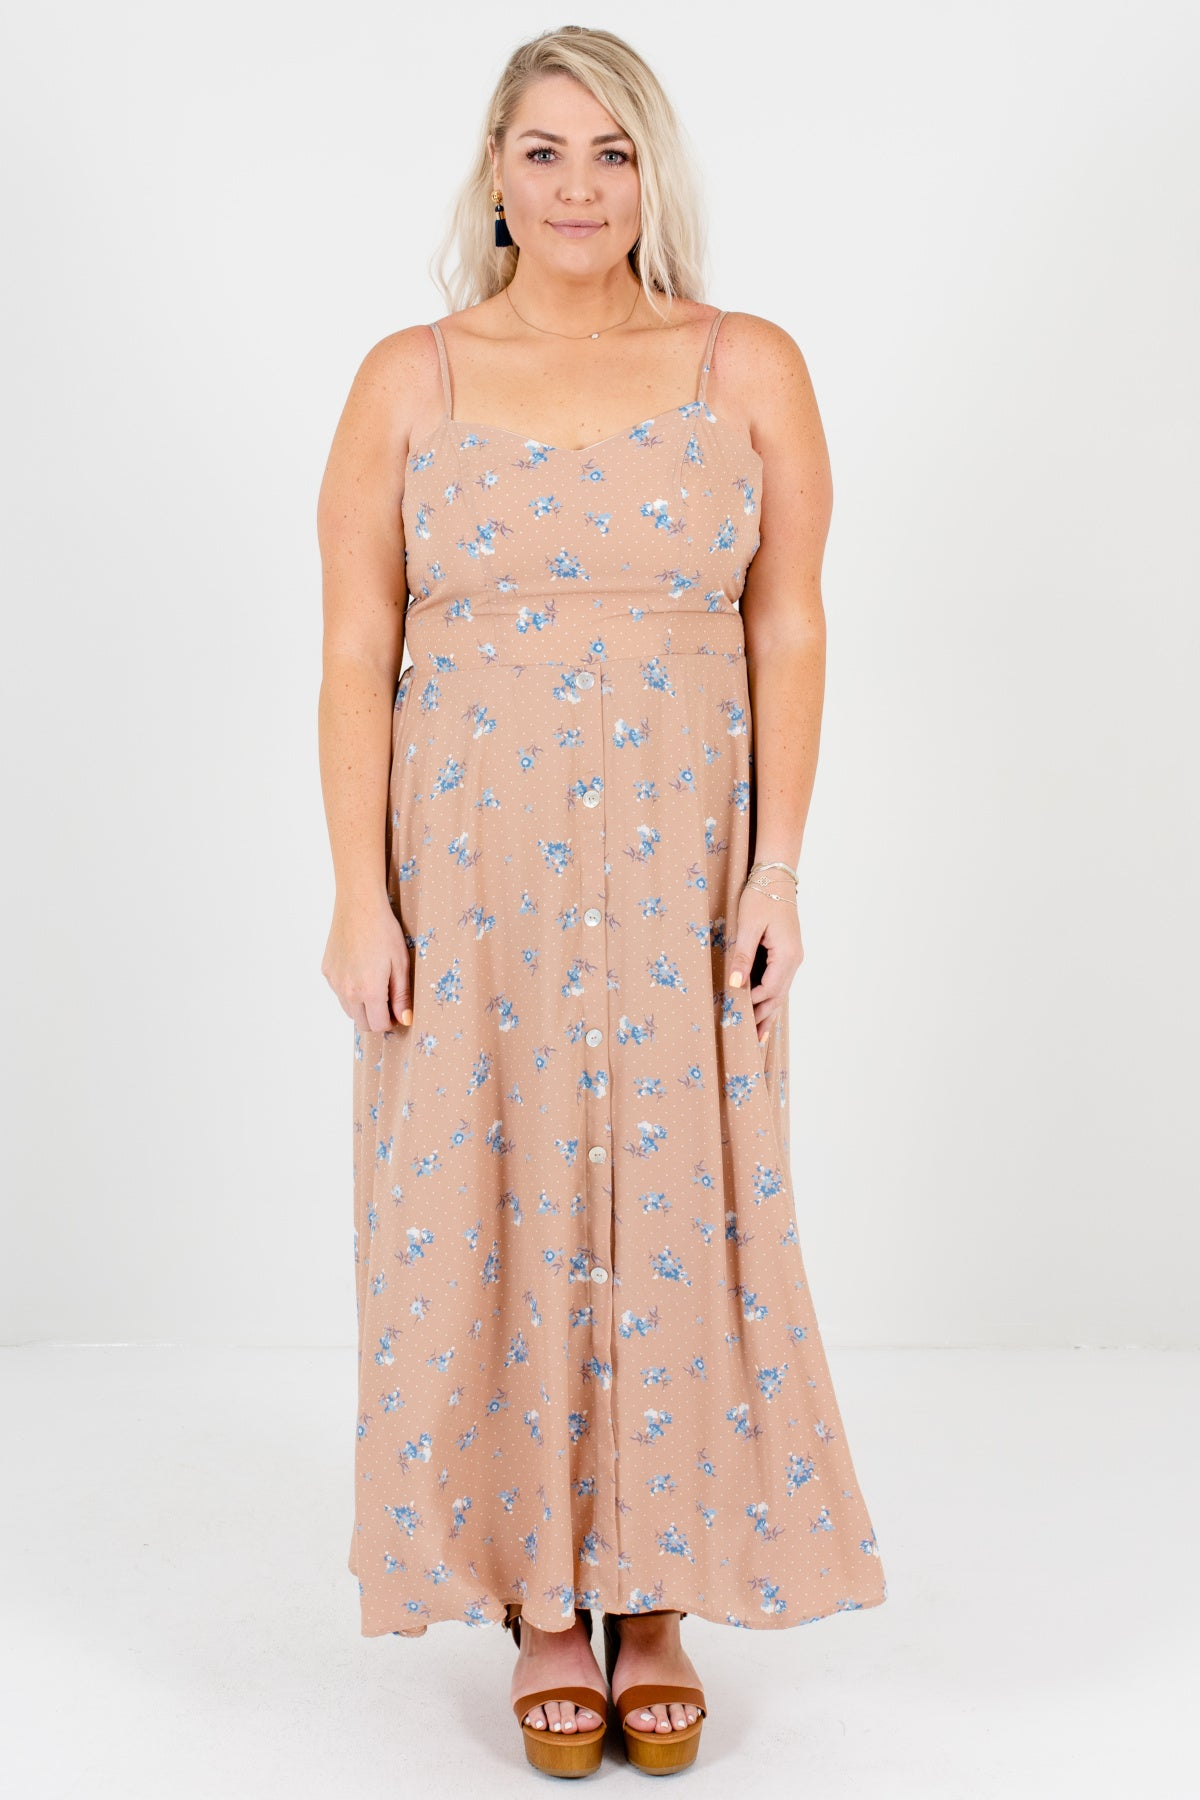 So Beautiful Pink Floral Polka Dot Maxi Dress